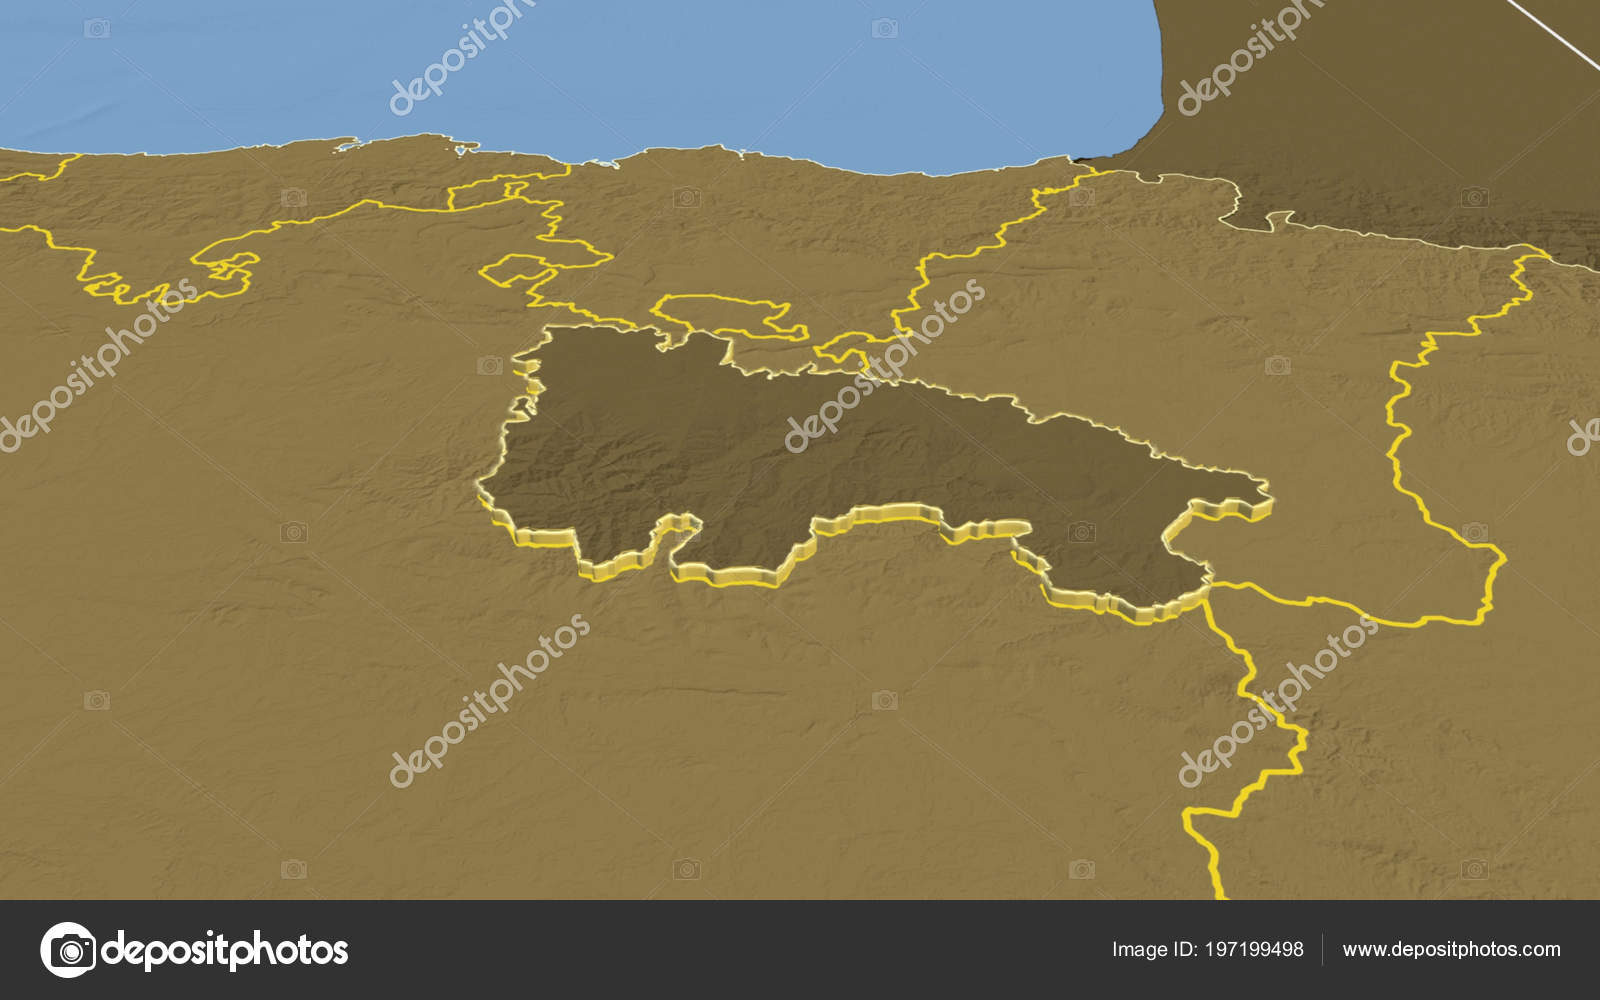 Rioja Region Spain Map.Rioja Region Spain Extruded Bilevel Elevation Map Stock Photo